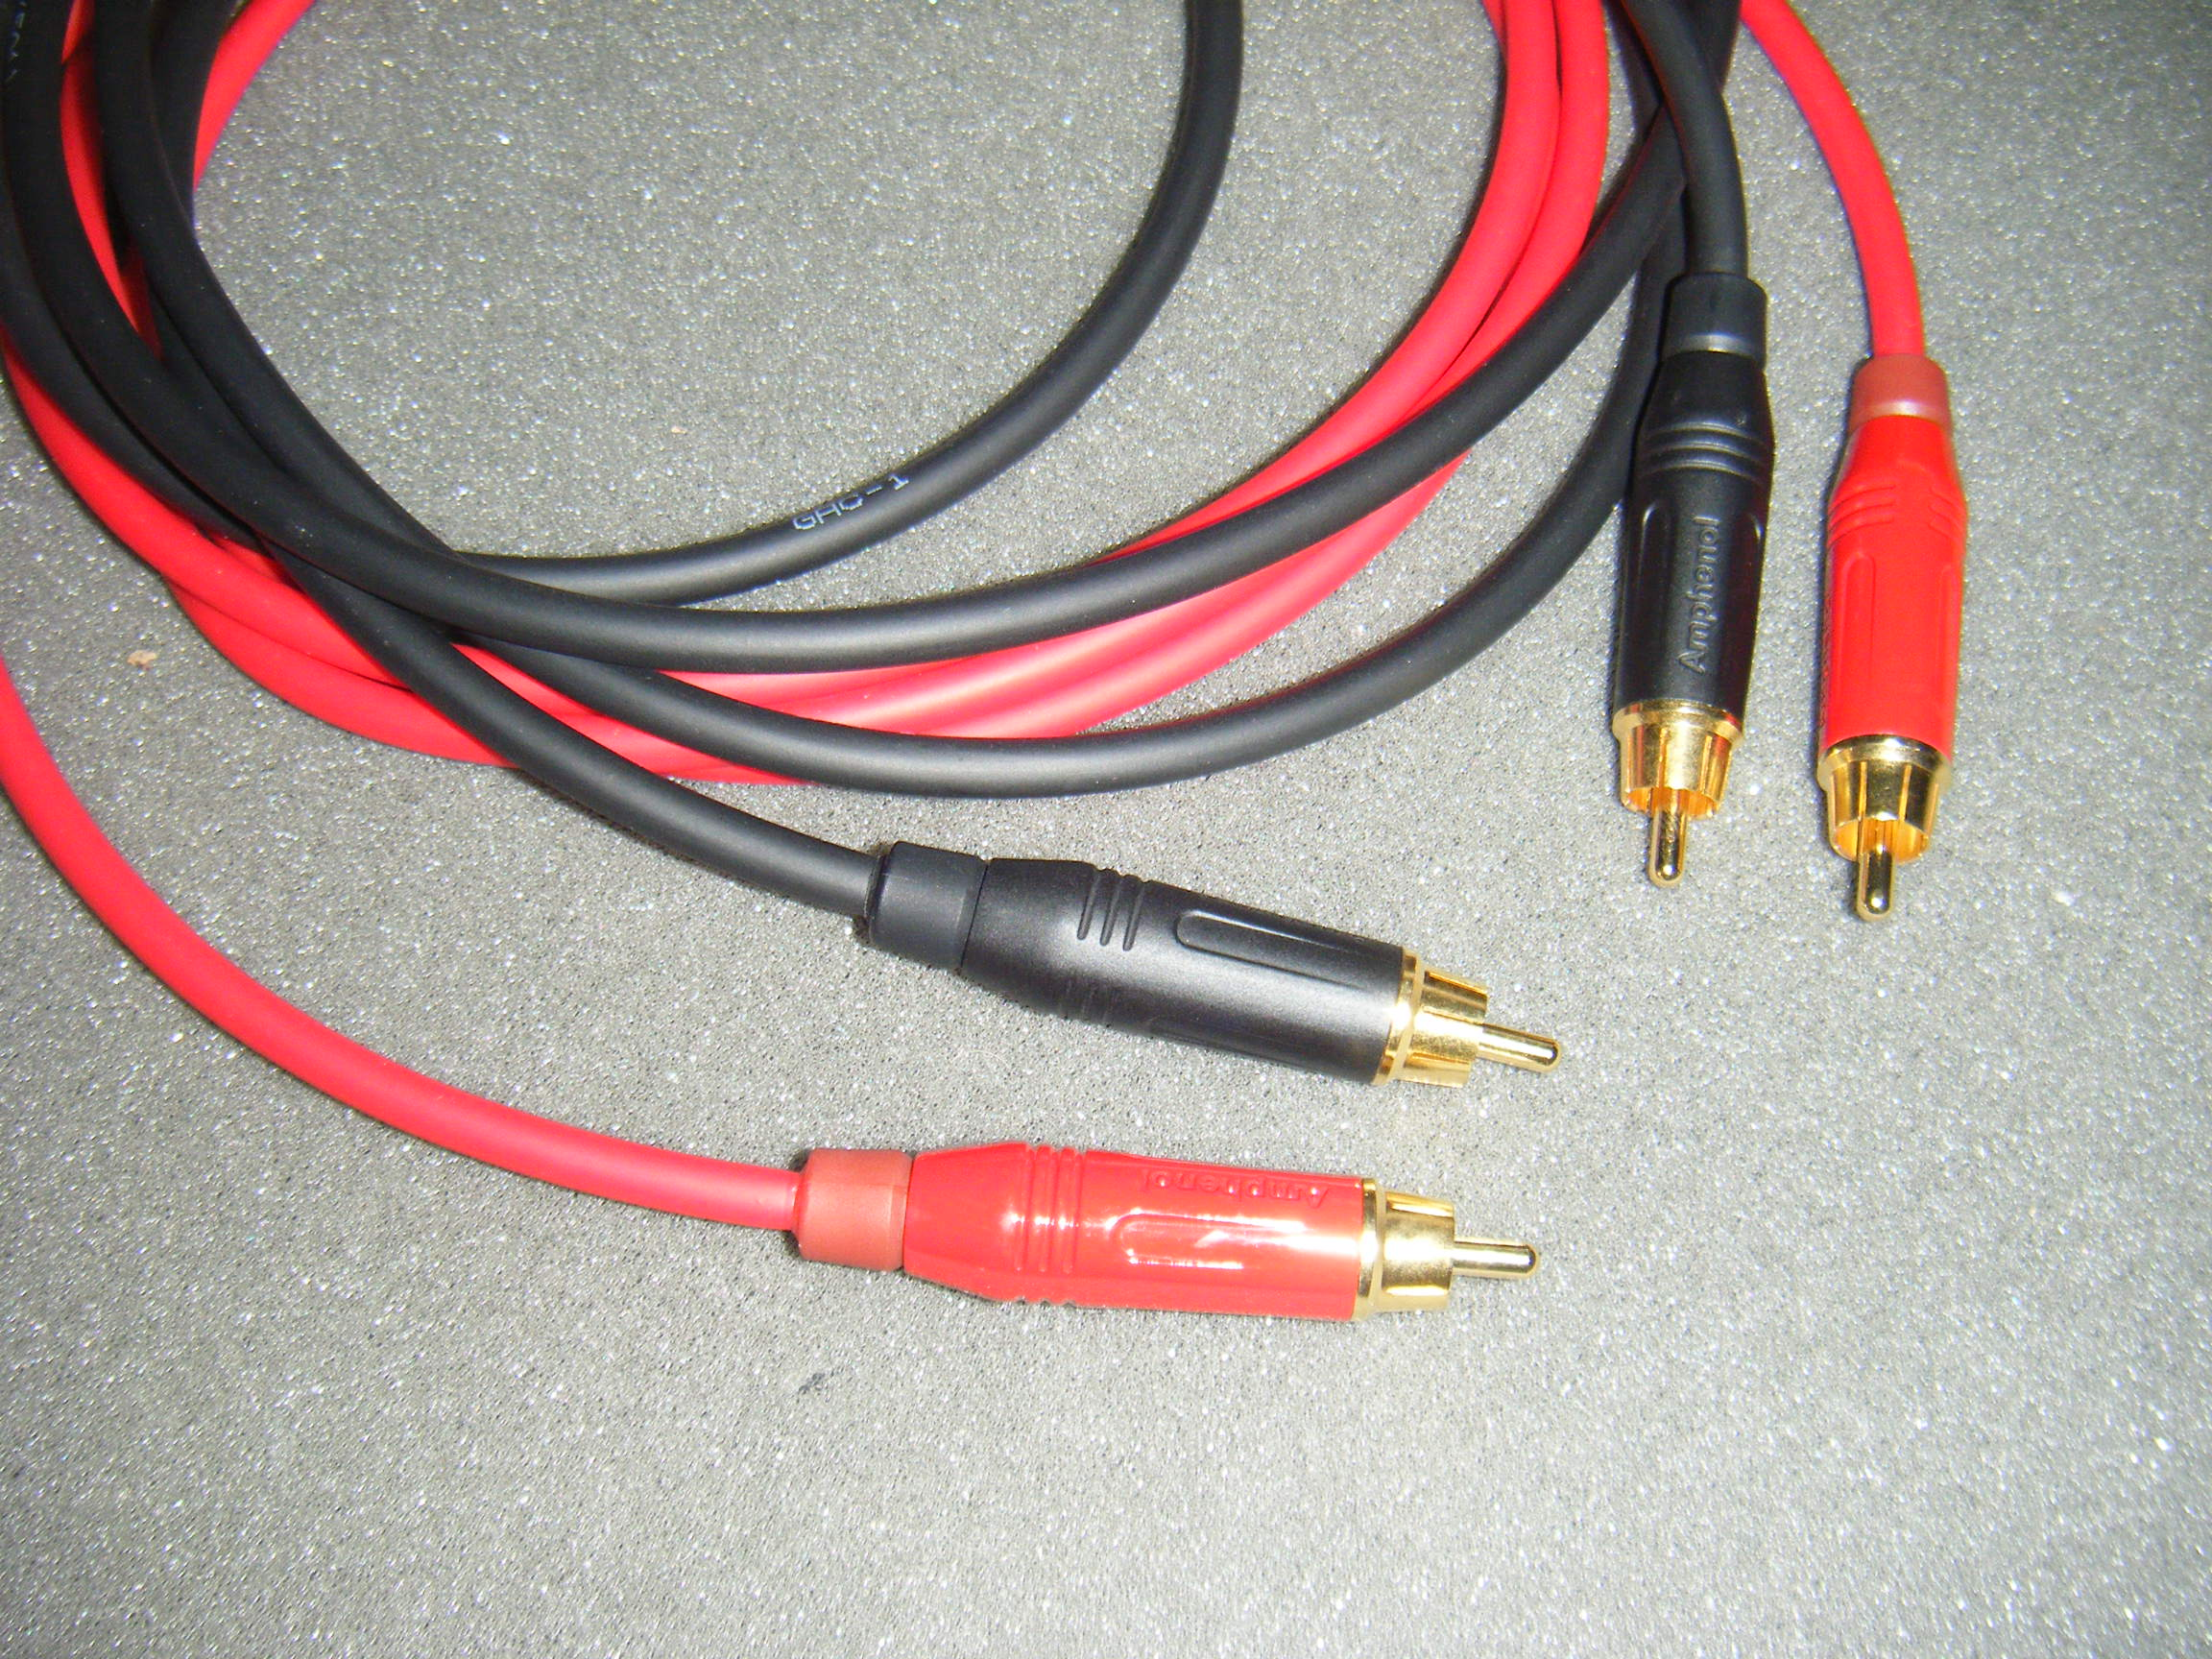 Gotham Audio Llc Cables Phono Analog How To Wire A Dmx Jack Ultimative Rca Hi End Cable Gac 1 Ultra 1001 X Chinch 1000 Guitarcable 4 Mono